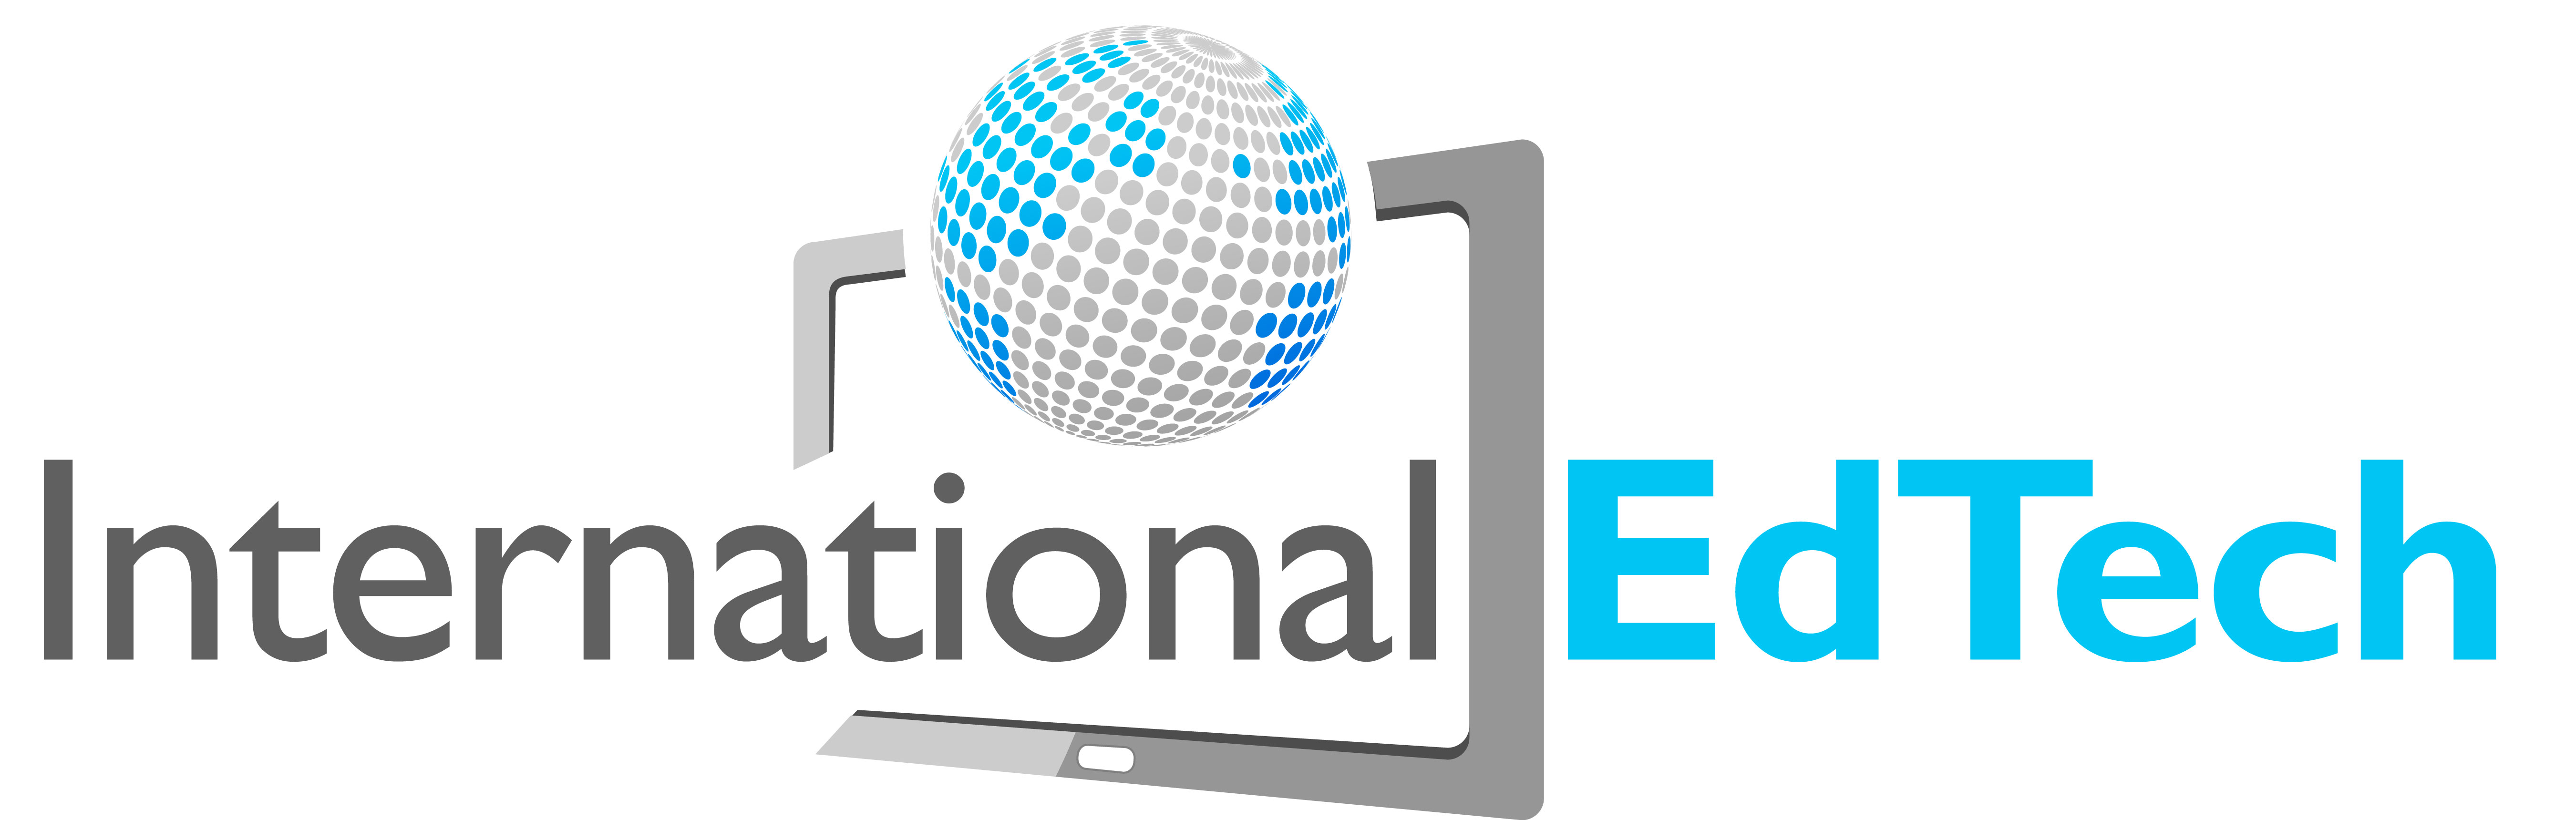 International EdTech - Educational Technology Services for International Schools